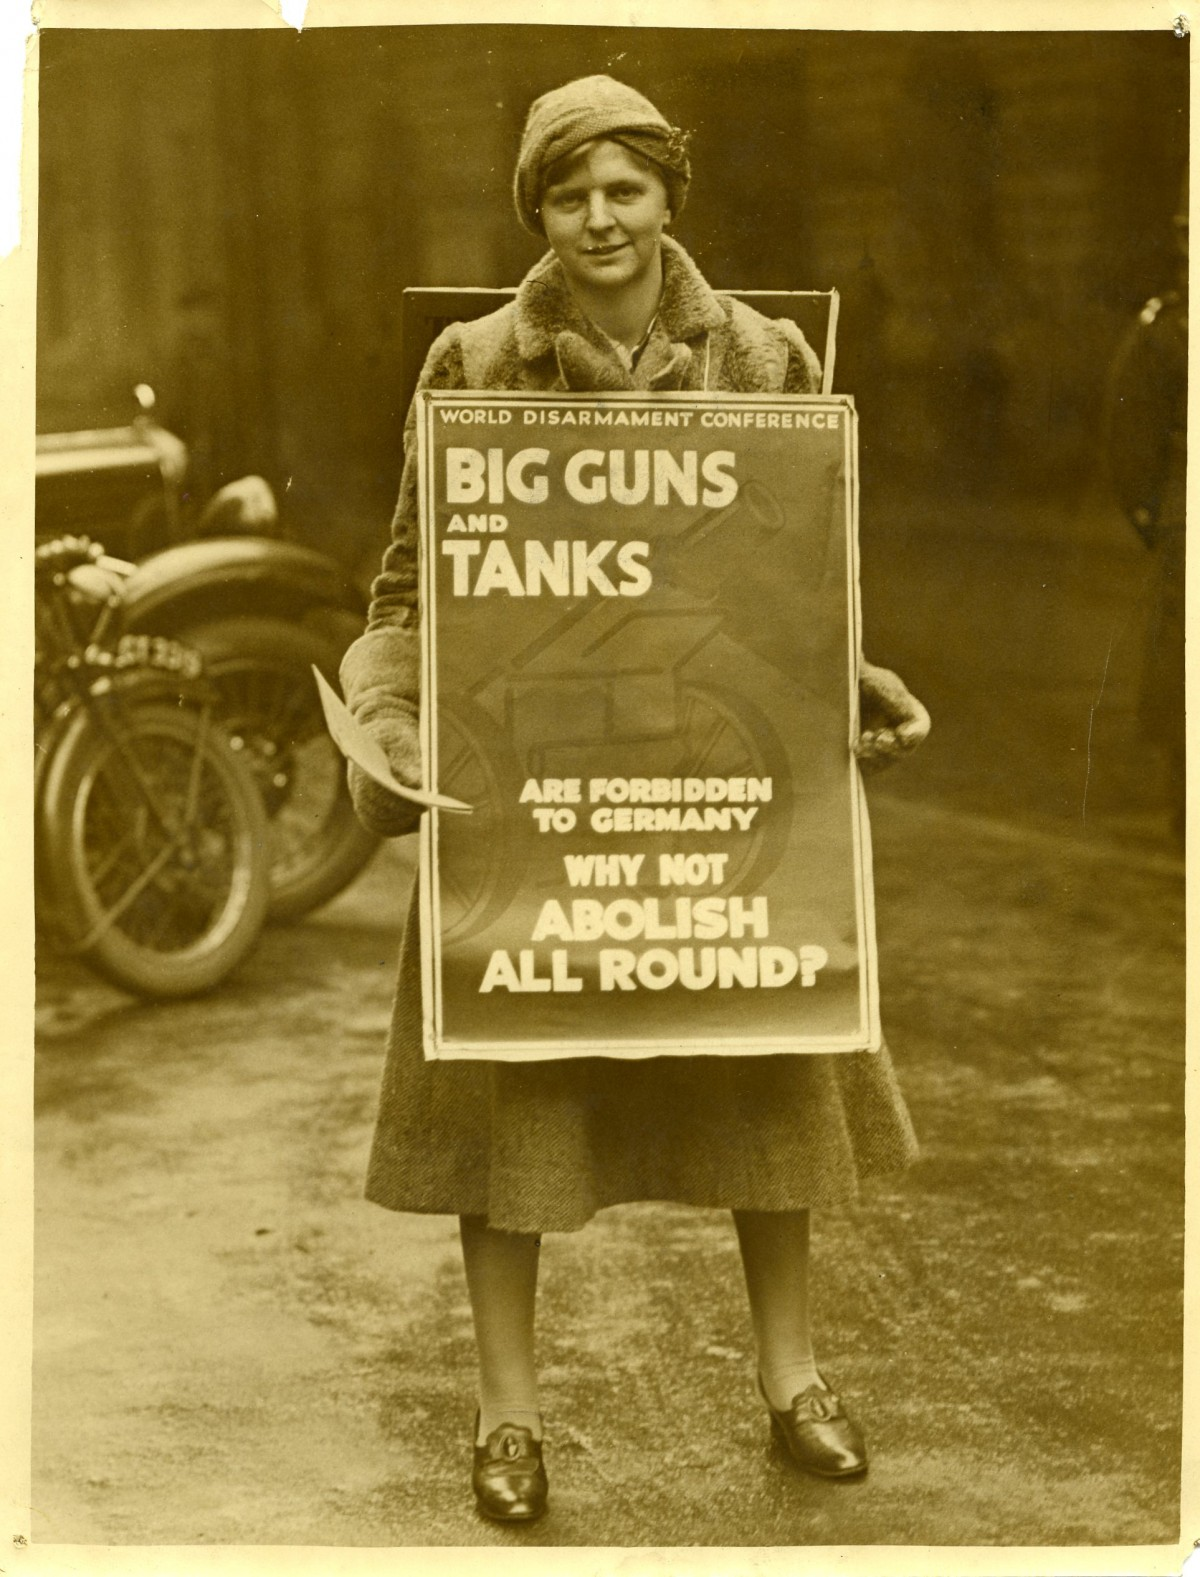 World disarmament campaigner, c. 1930 - 1932